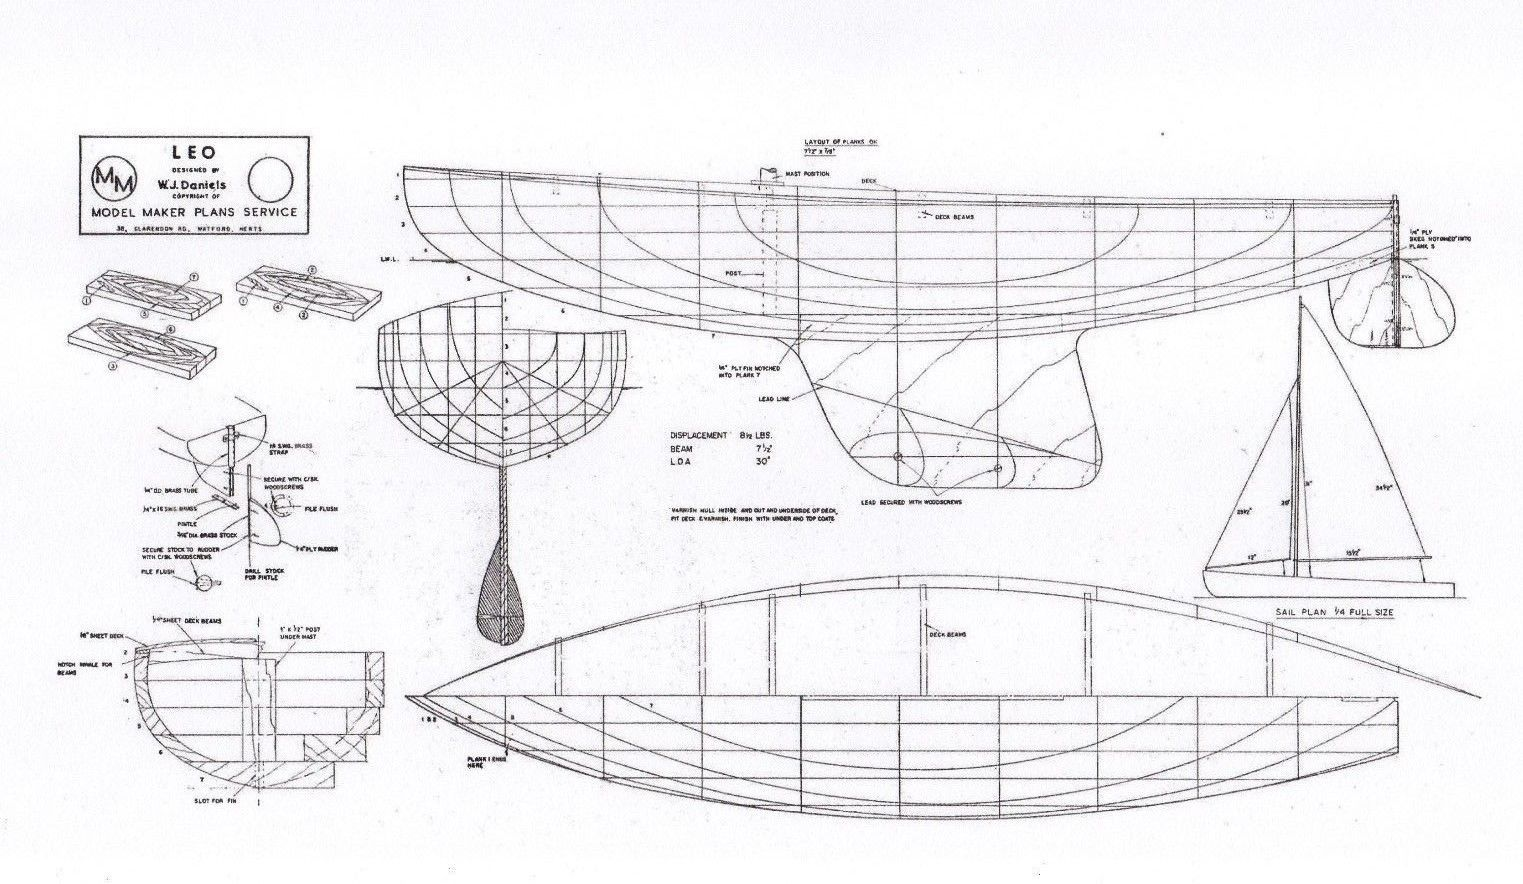 leo 30 inch model racing pond yacht design by w j daniels ebay [ 1523 x 884 Pixel ]